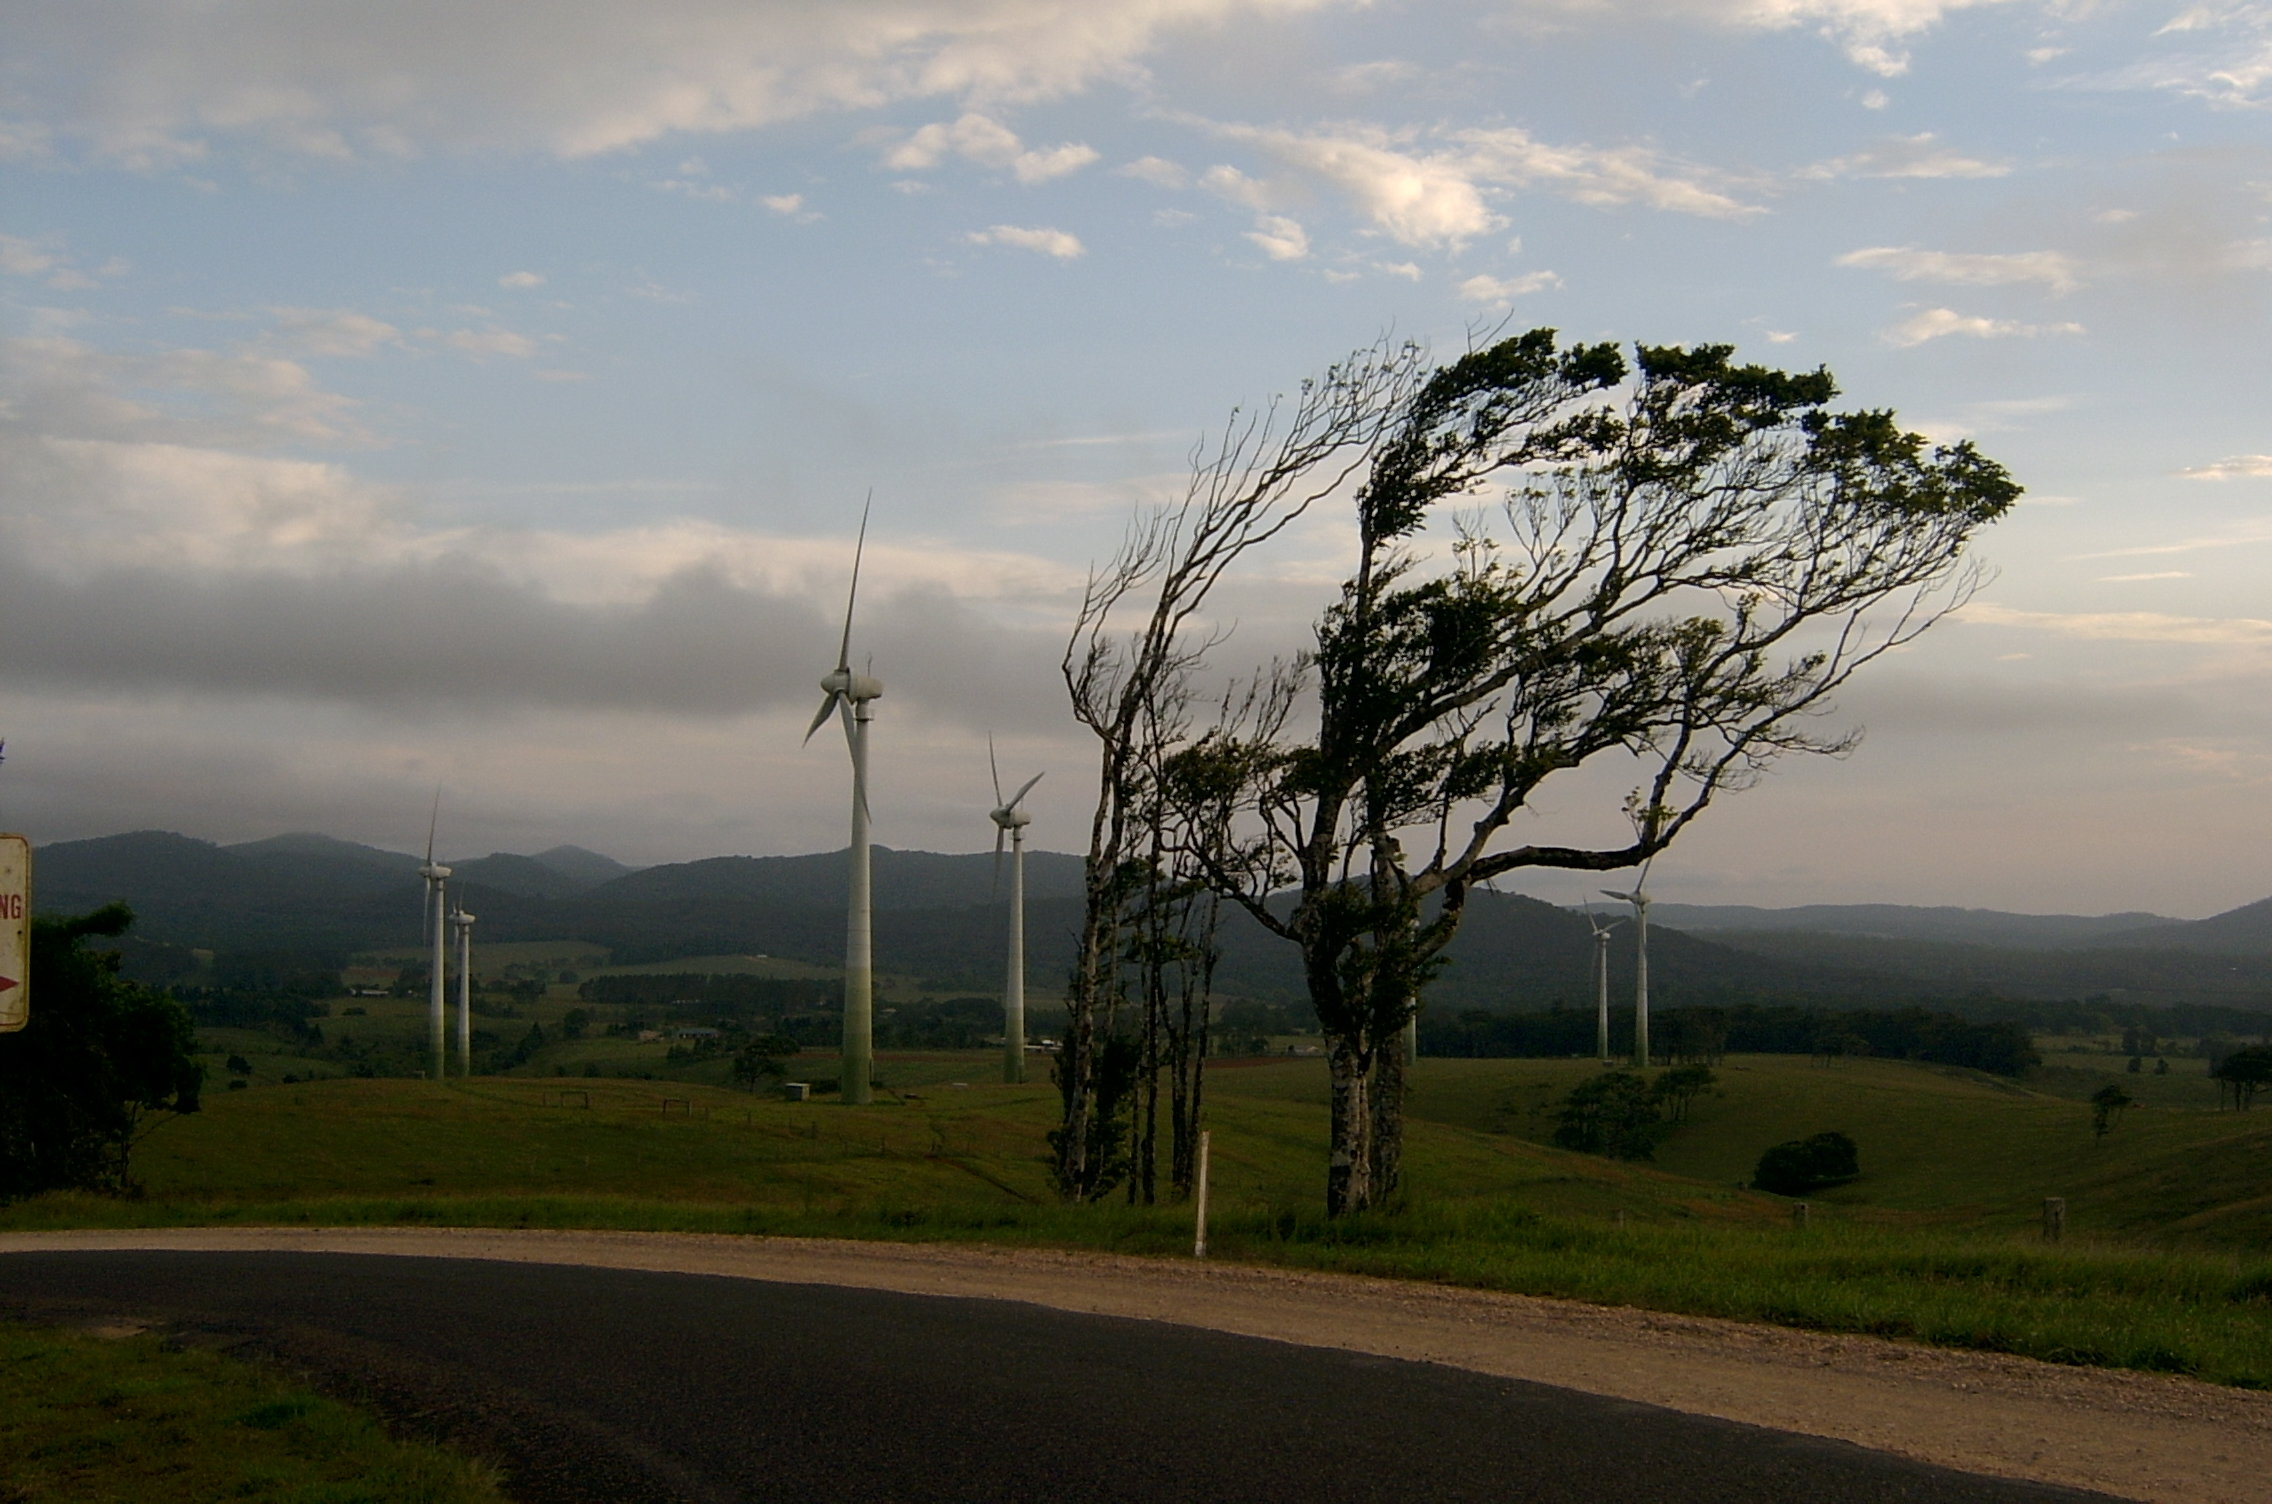 New Coal Doesnt Stack Up Just Look At Queenslands Renewable Network Diagram Corporate Office Flickr Photo Sharing As The Name Suggests Windy Hill Near Cairns Gets Its Fair Share Of Power Generating Weather Credit Leonard Low Wikimedia Commons Cc By